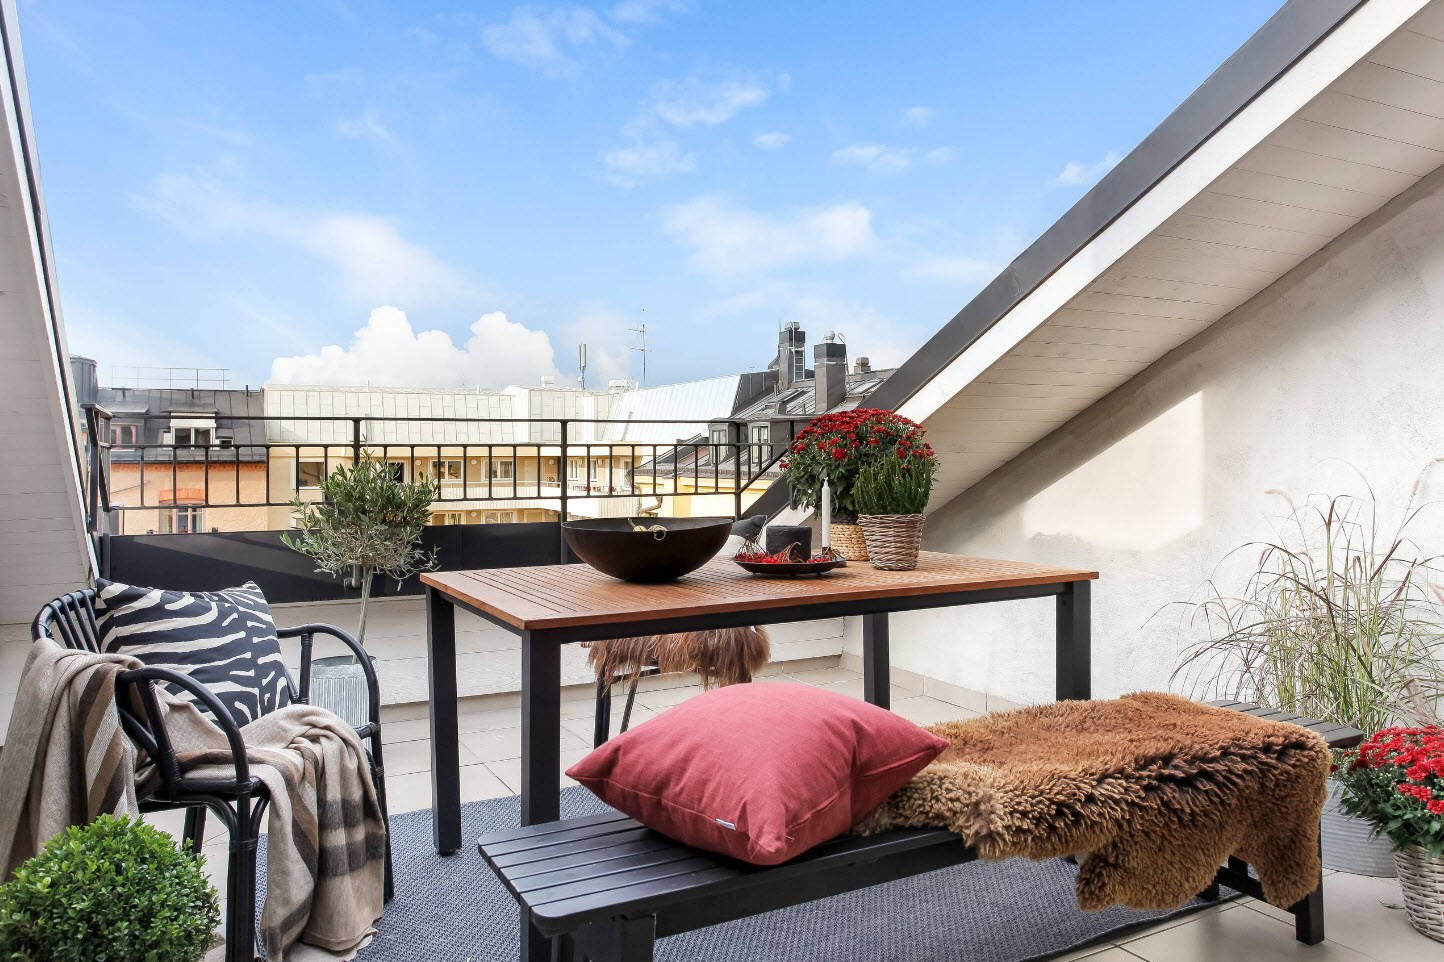 Large Balcony Design Ideas: Modern Trends in Furniture and Decoration. Loft terrace with full-fledged living zone